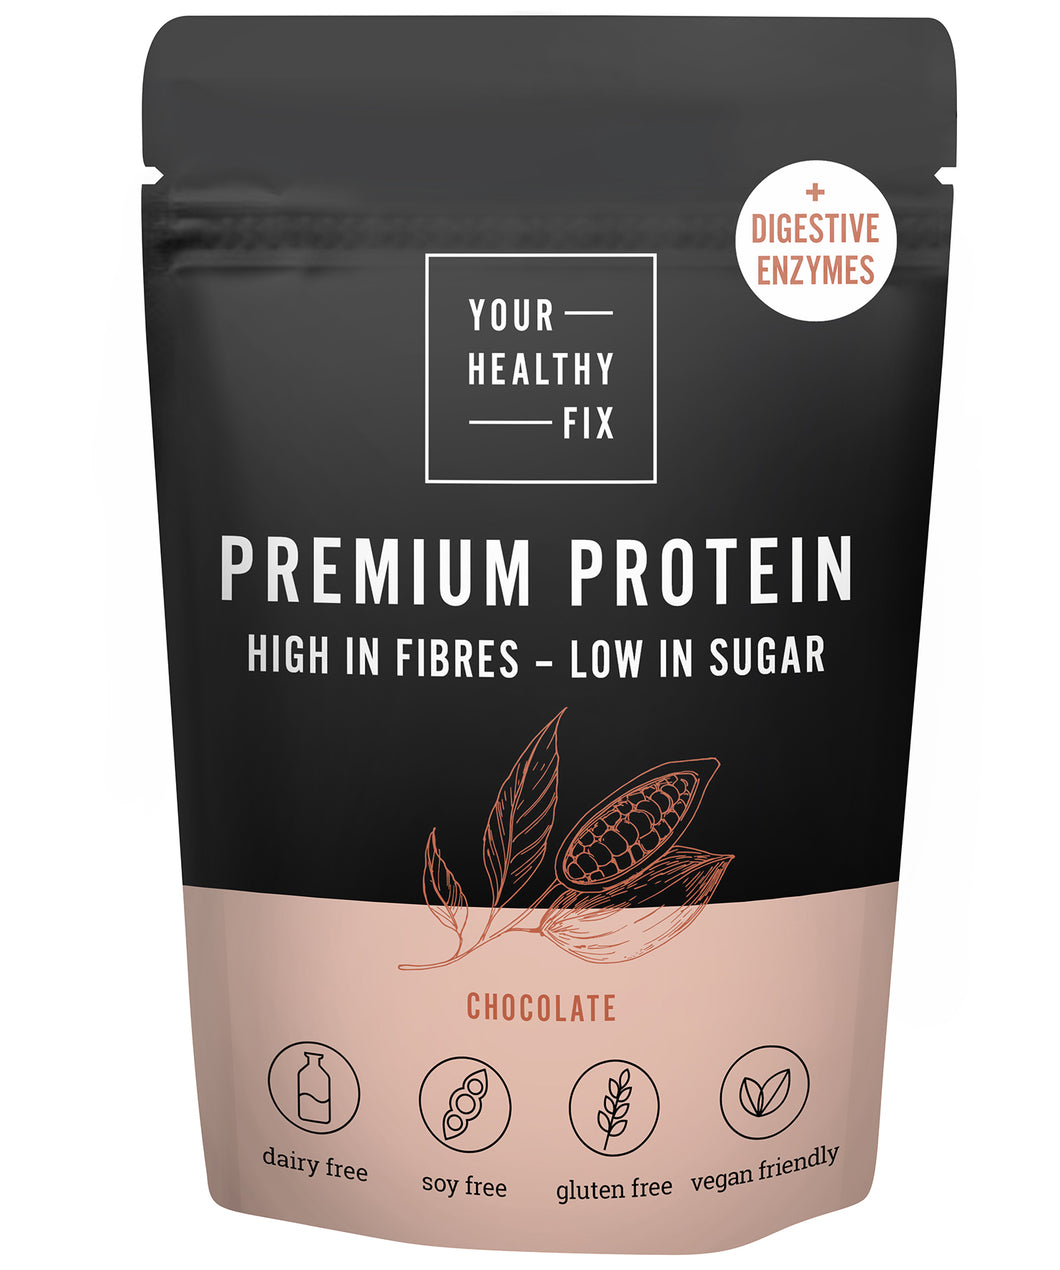 Chocolate protein with digestive enzymes